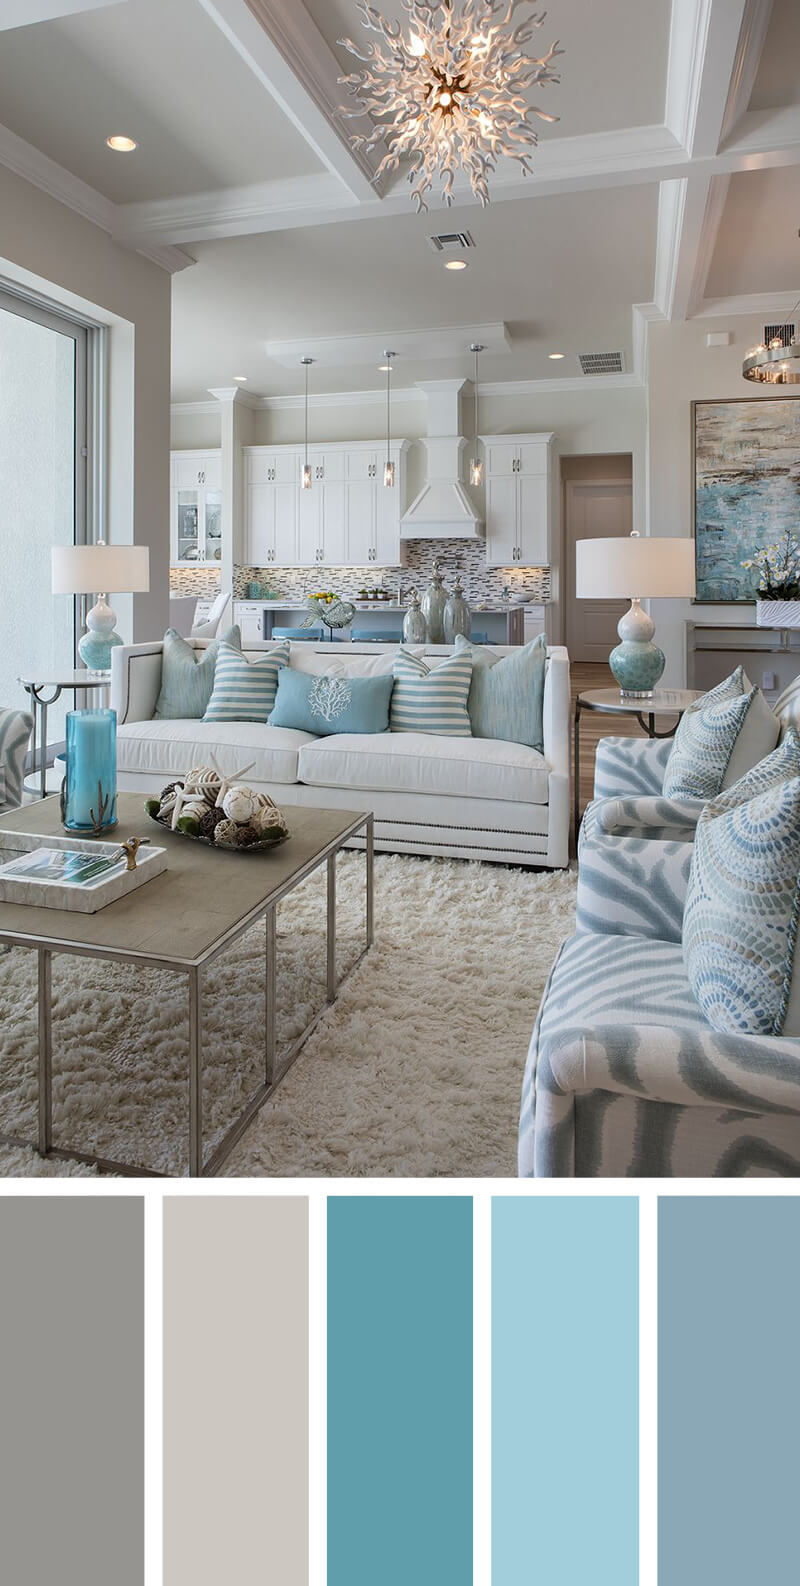 7 Best Living Room Color Scheme Ideas And Designs For 2019